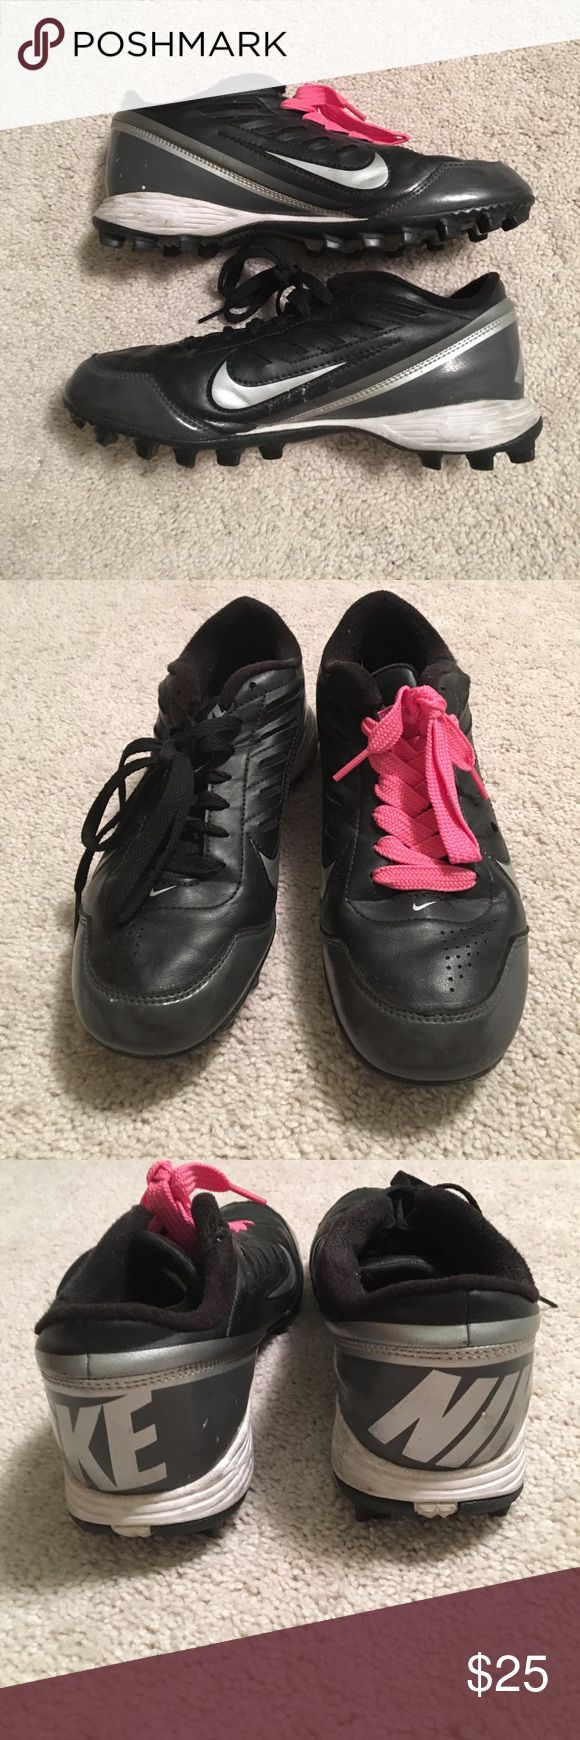 NIKE Turf and Grass Cleats! NIKE Turf and Grass Cleats! Super comfy and extremely affective on the field. (Pink shoelace is for breast cancer awareness) Nike Shoes Athletic Shoes